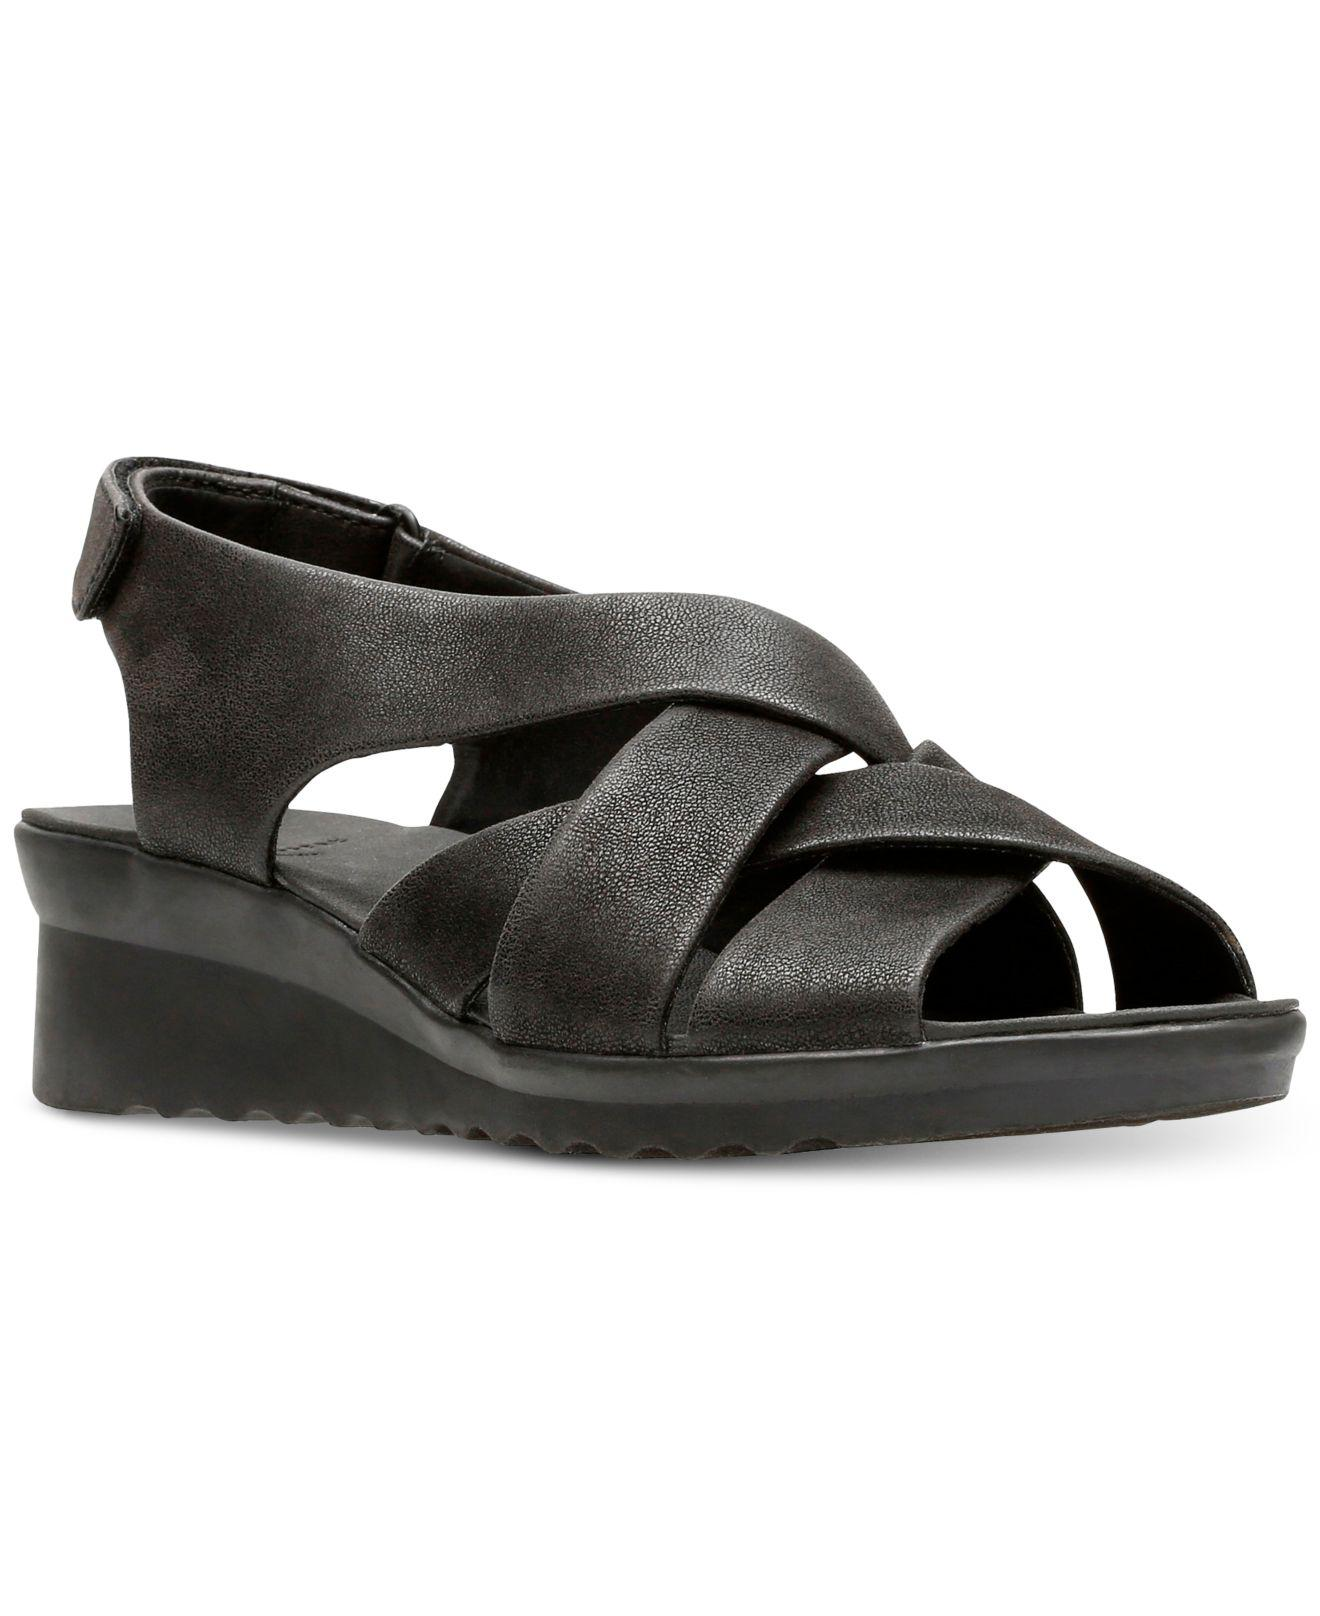 6d21d2a5603a Lyst - Clarks Cloudsteppers Caddell Jena Wedge Sandals in Black